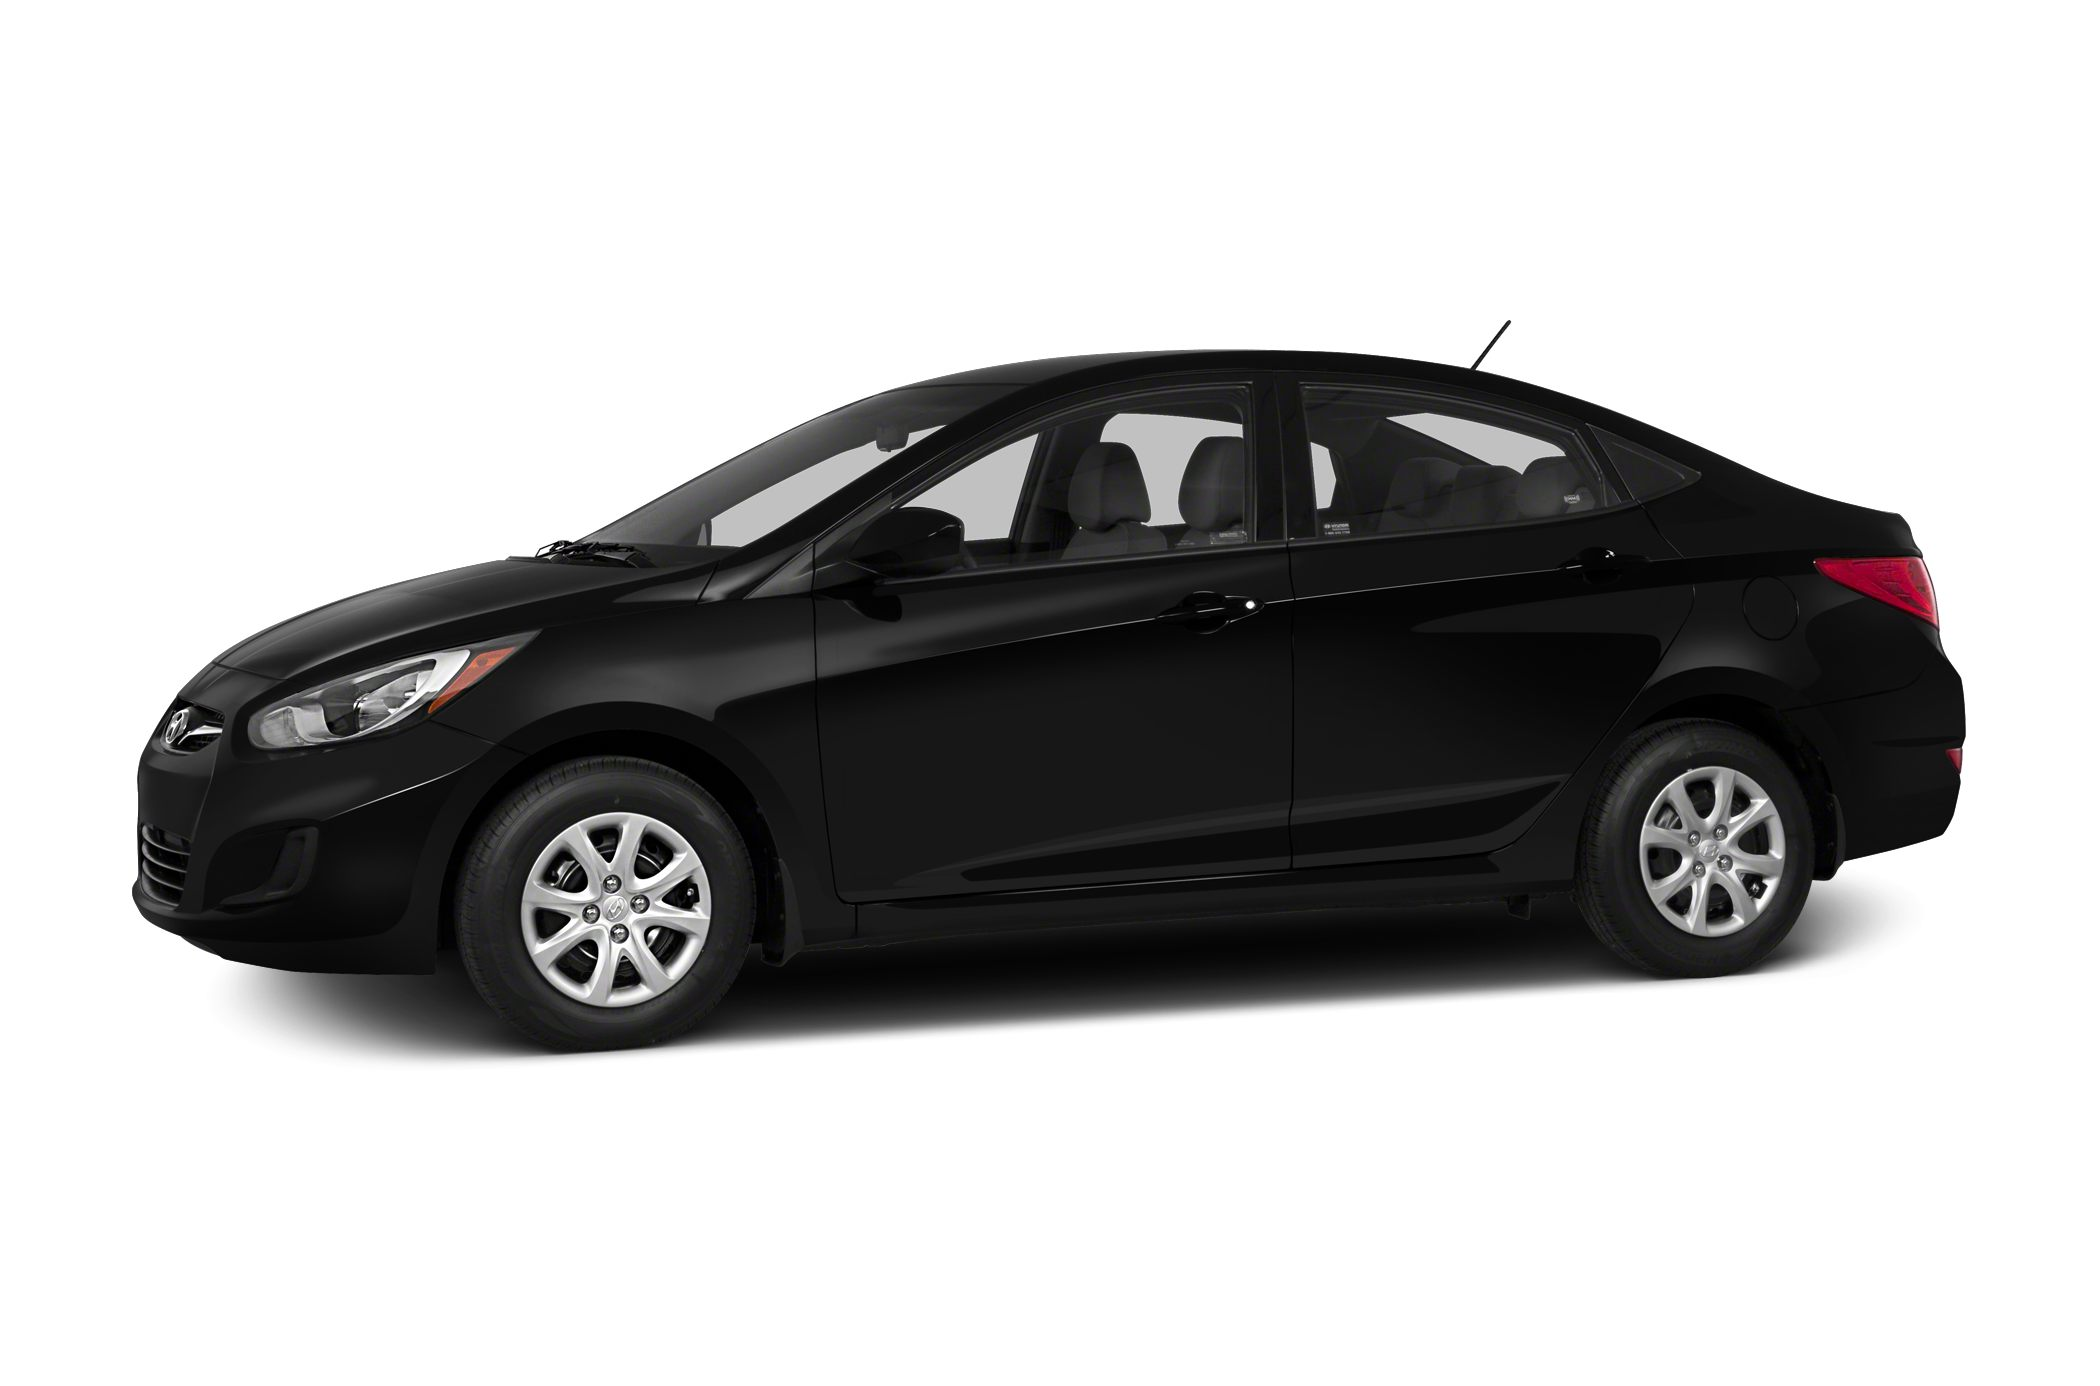 2013 Hyundai Accent GLS Sedan for sale in El Paso for $13,995 with 16,360 miles